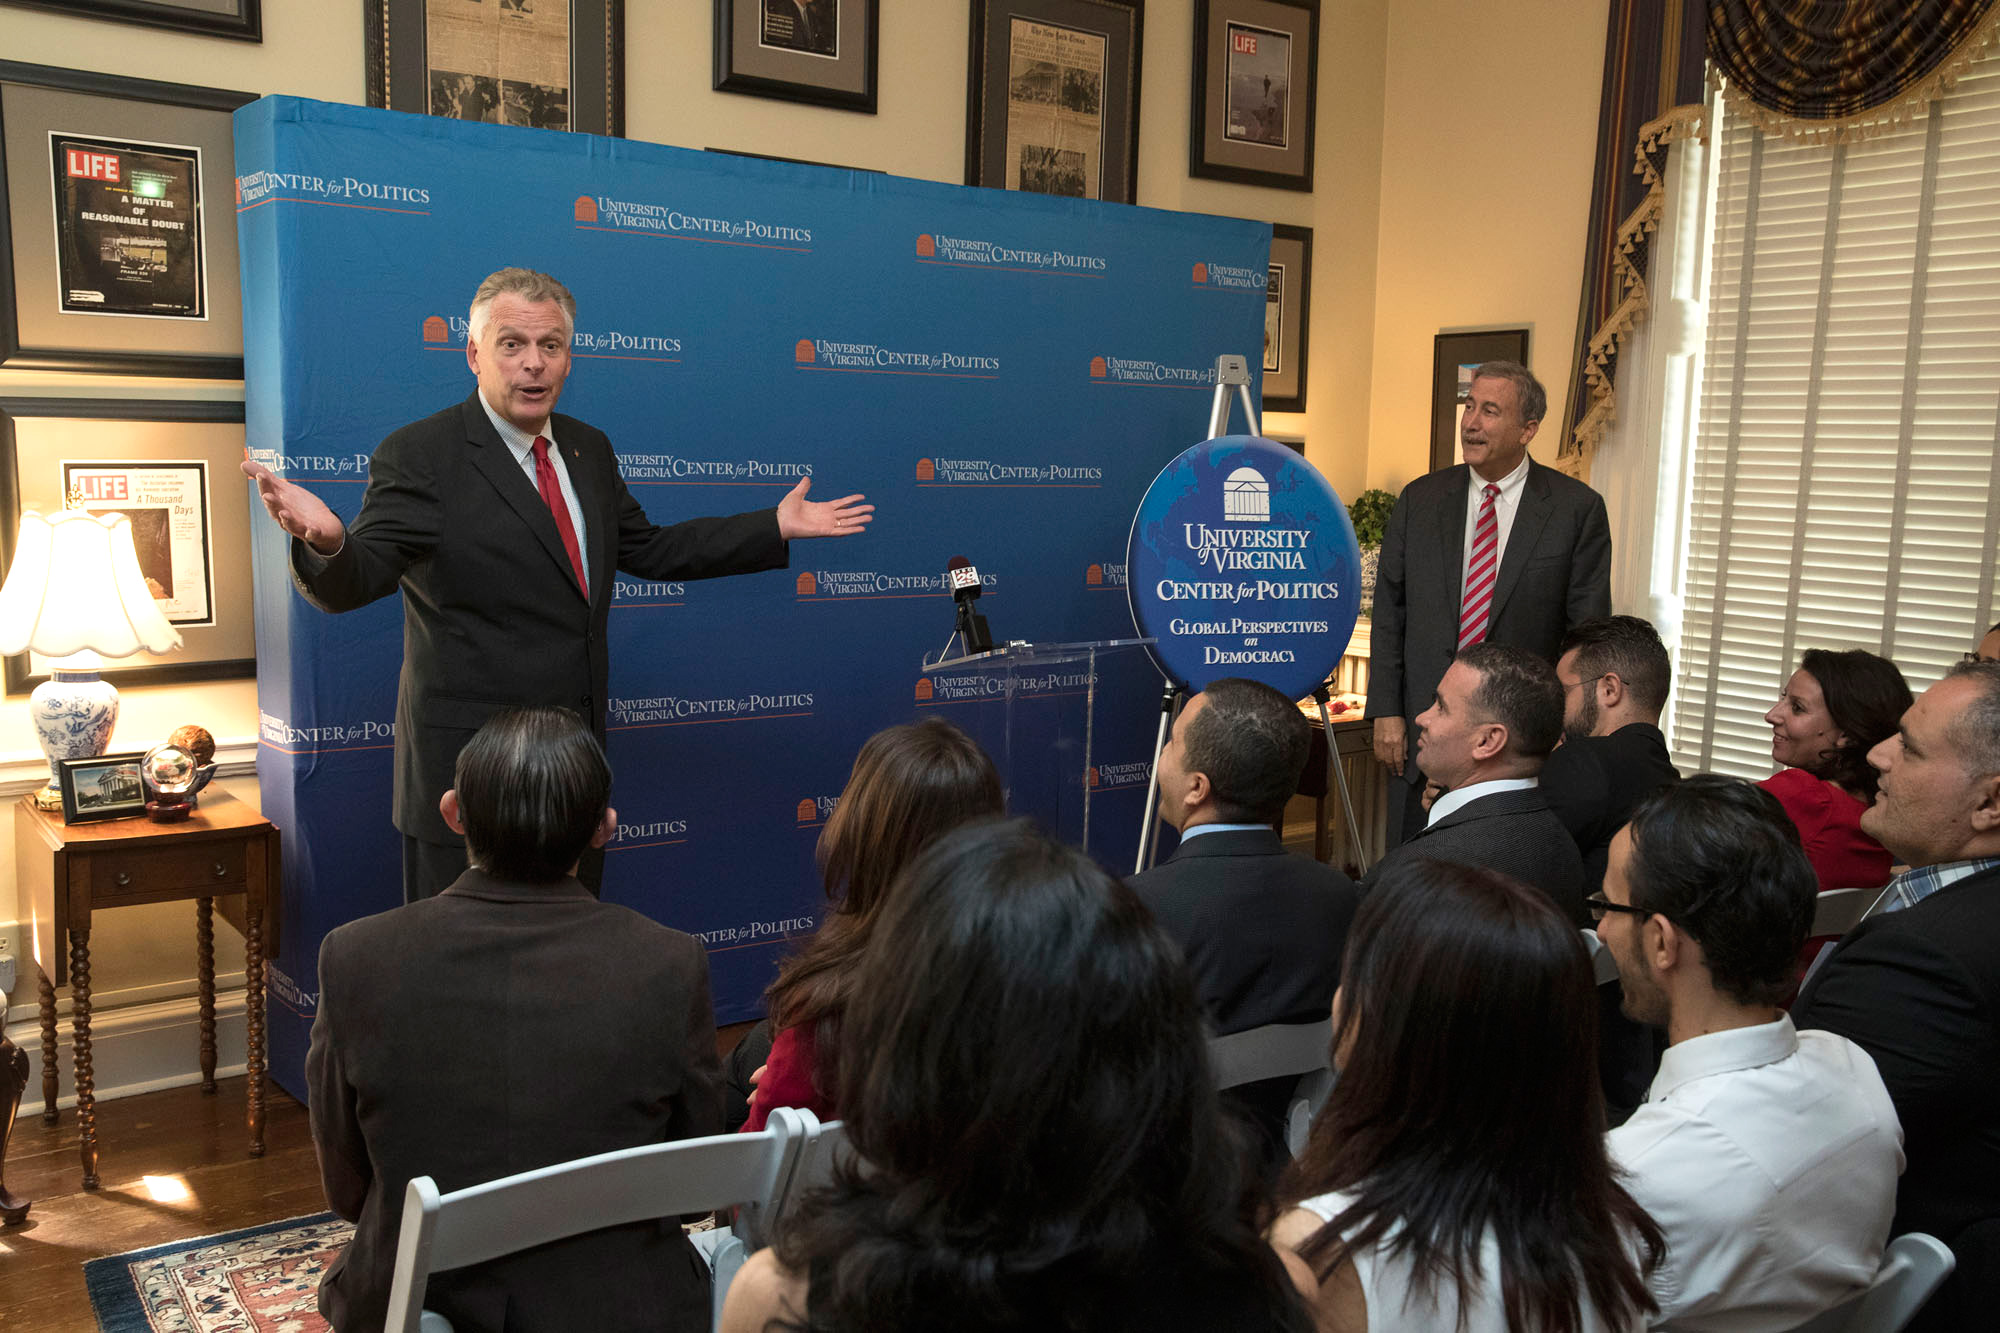 Gov. Terry McAuliffe takes questions from the audience, which included fellows in UVA's Center for Politics' Leaders for Democracy Fellowship Program.